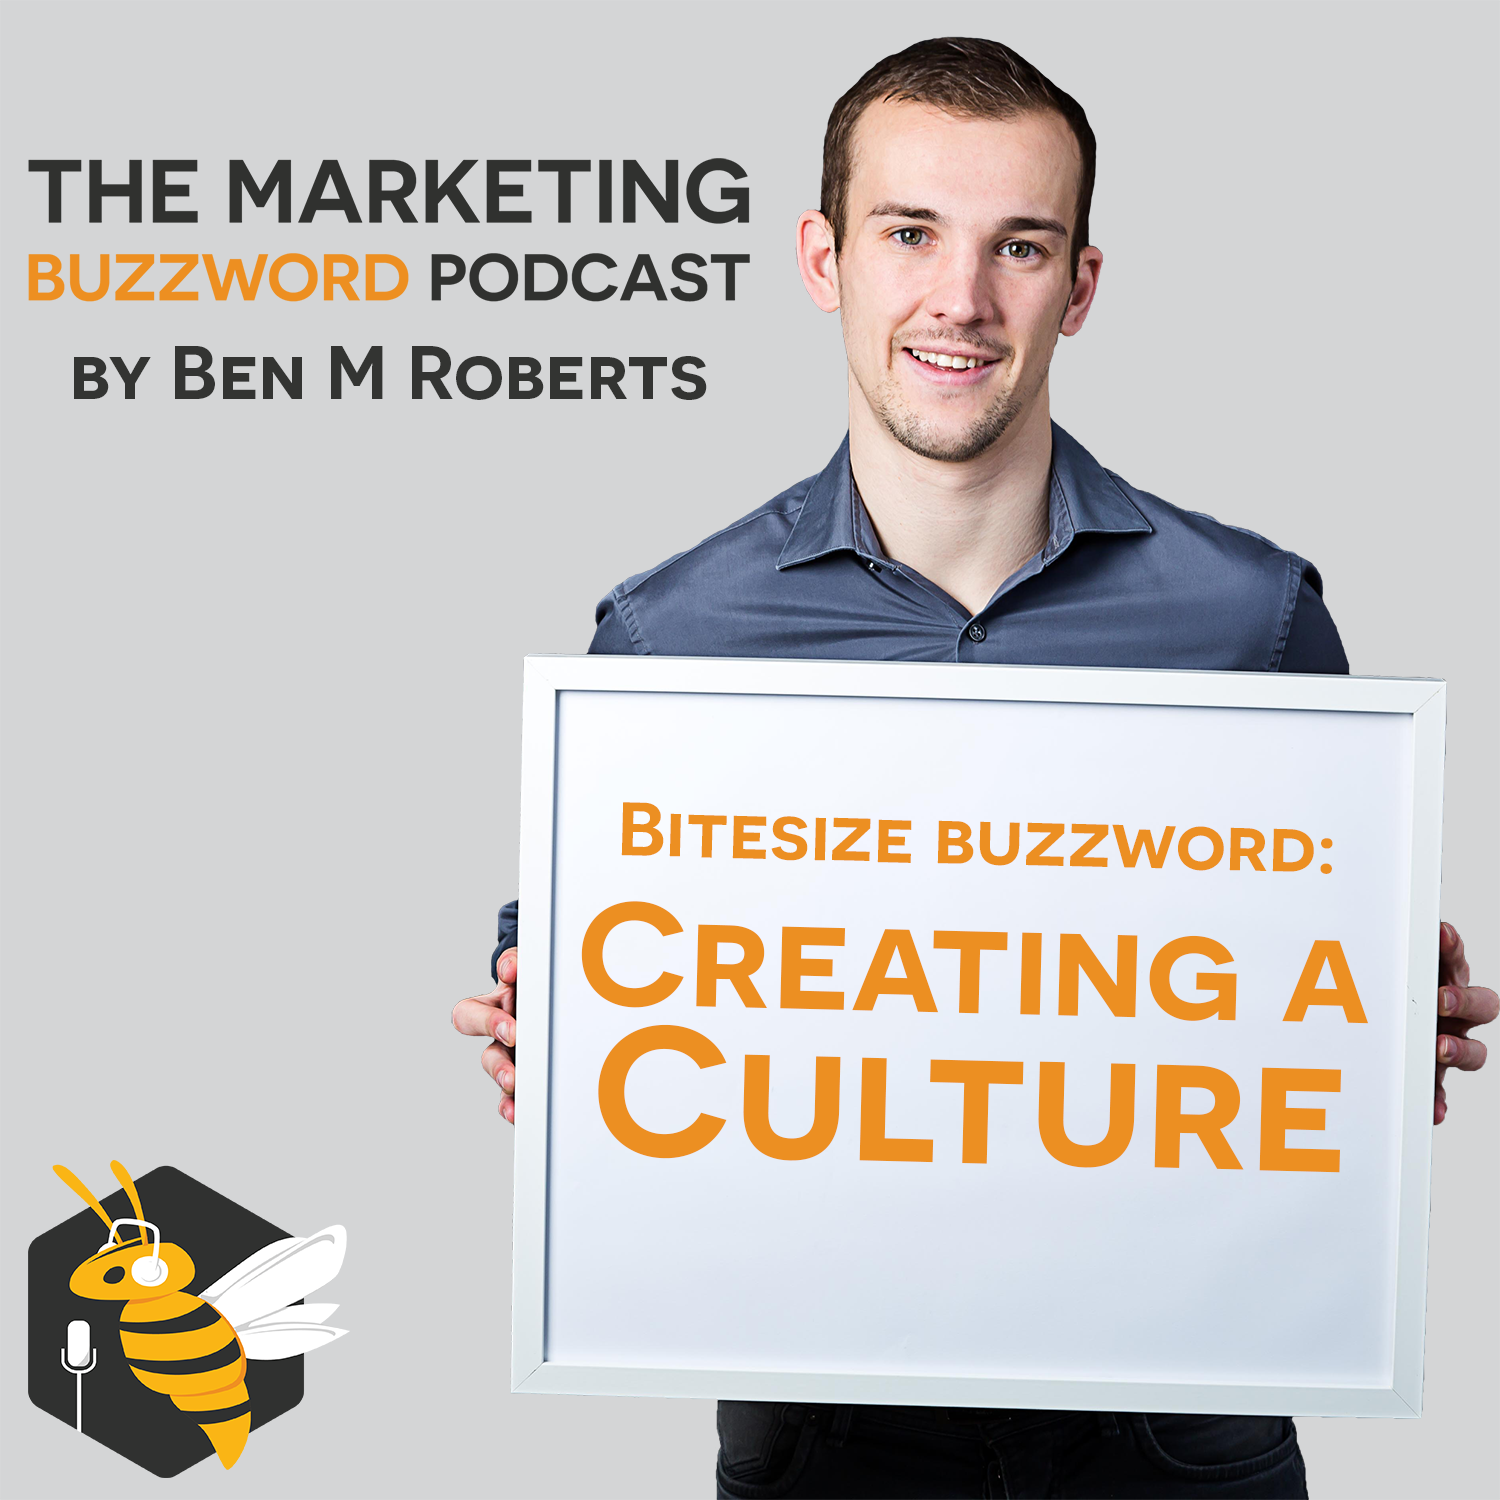 Bitesize Buzzword: Creating a Culture - Why is creating a culture important? How can you actually create a culture? What are some of the barriers to creating a positive company culture?